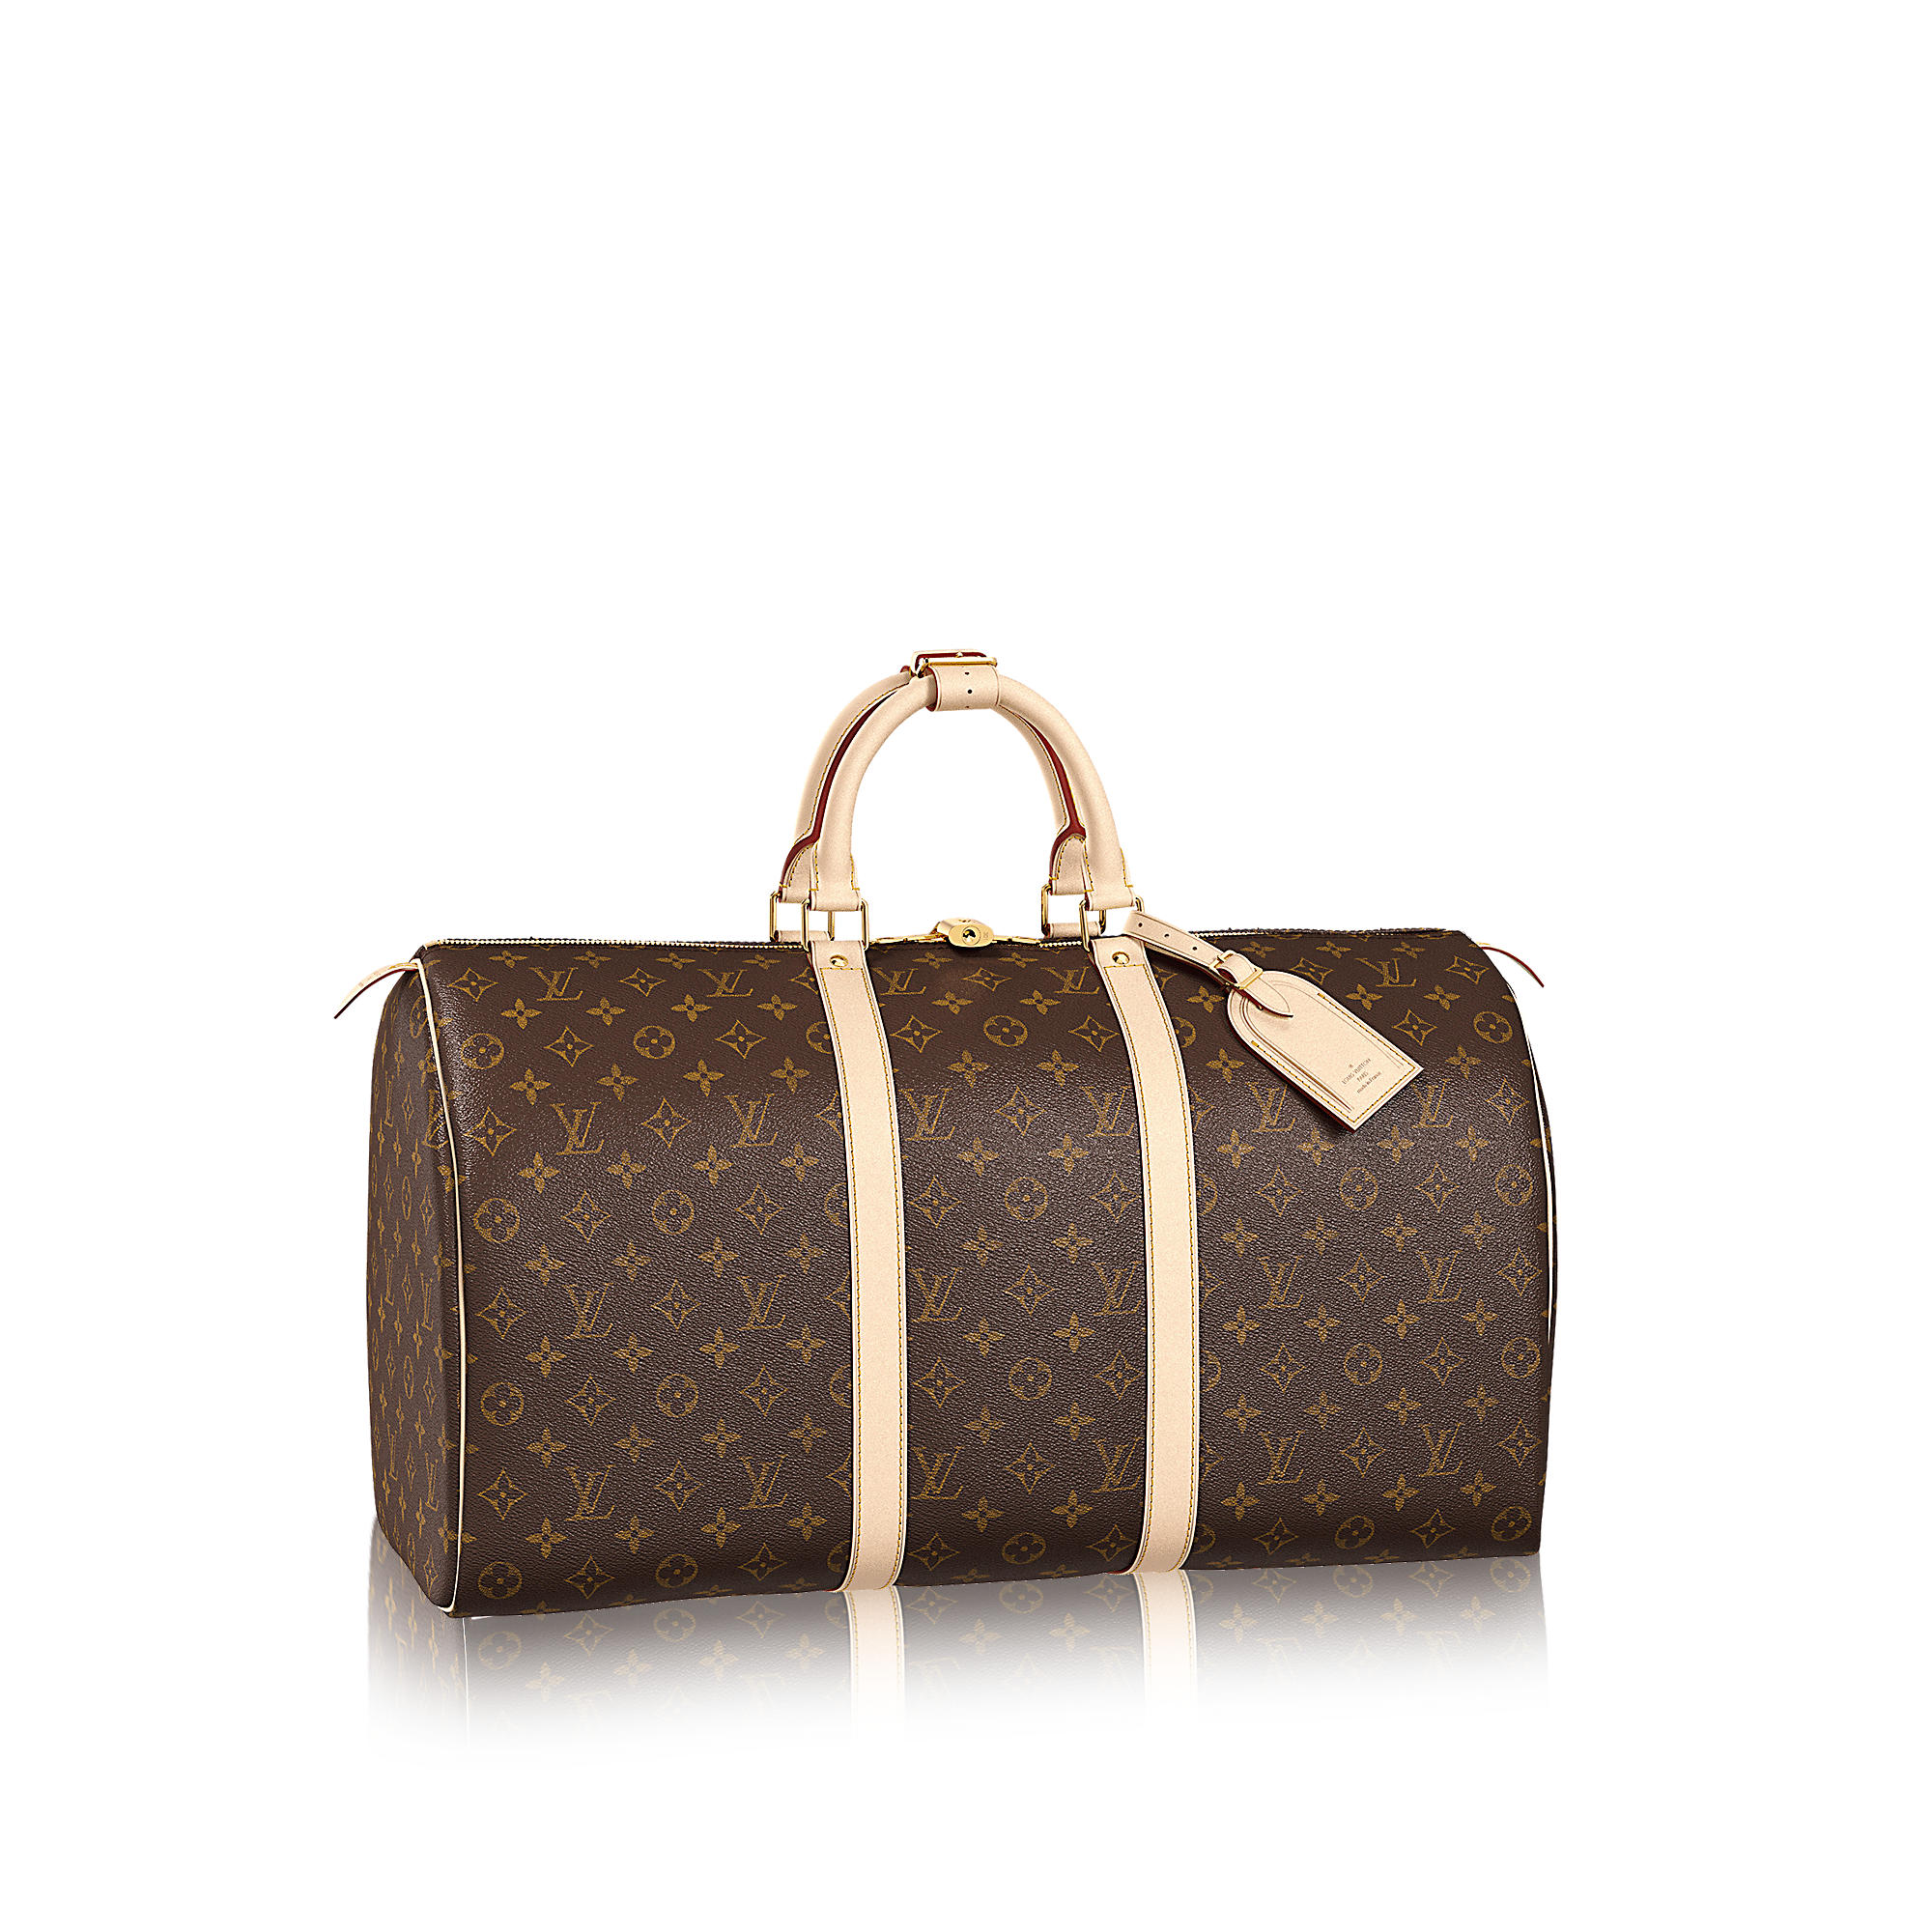 f57ad5c3b Offer You Best Louis Vuitton Travel Replica Bag At Affordable Prices